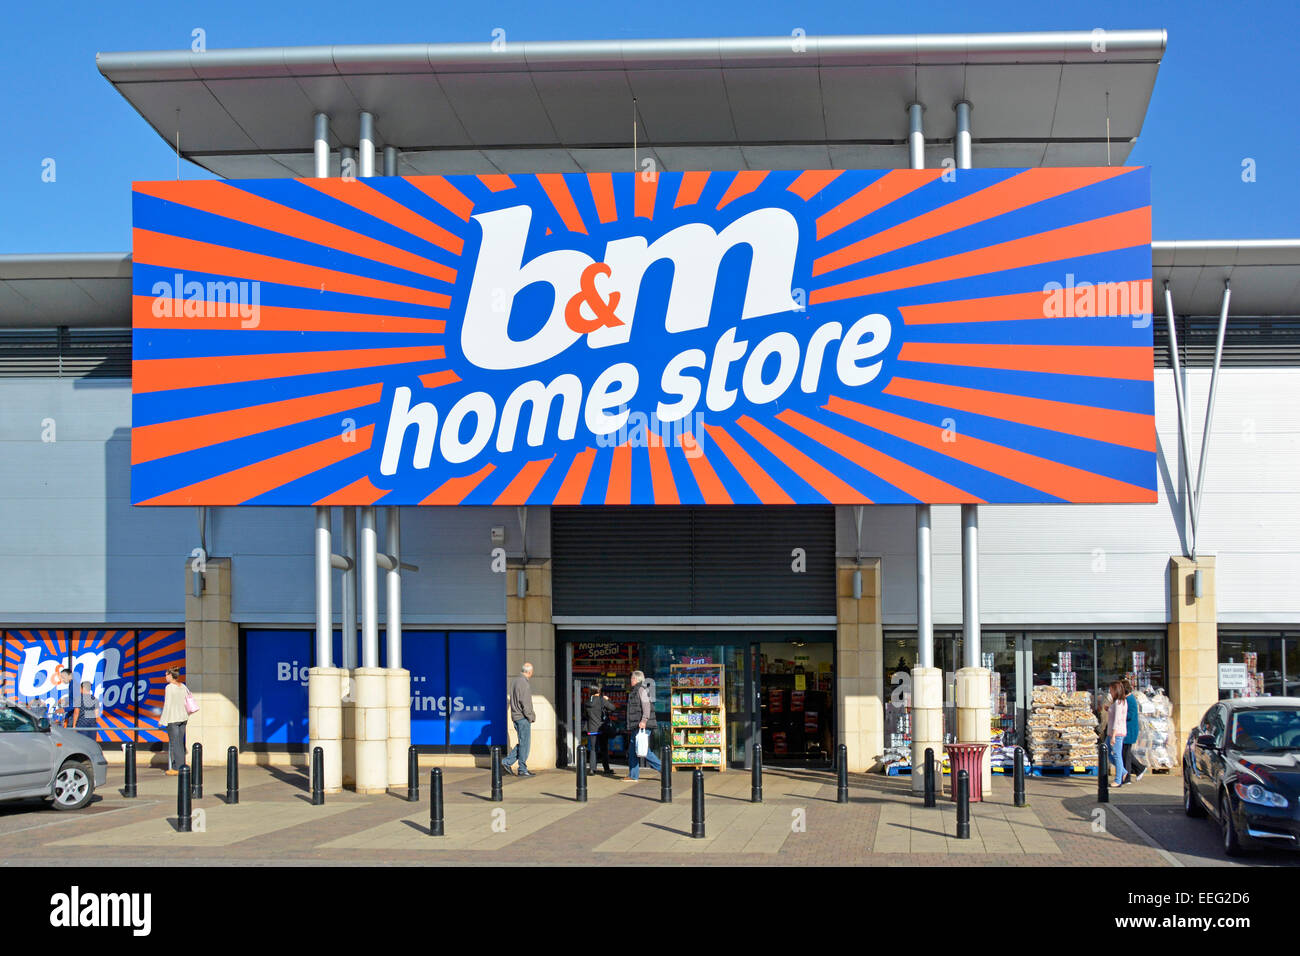 Lakeside has a large mothercare and babies r us in the toys r us store just a few doors down - they are in the retail park area rather than the main indoor shopping place at lakeside. Bluewater is very close to Lakeside in reality so you could easily do both in the same day.